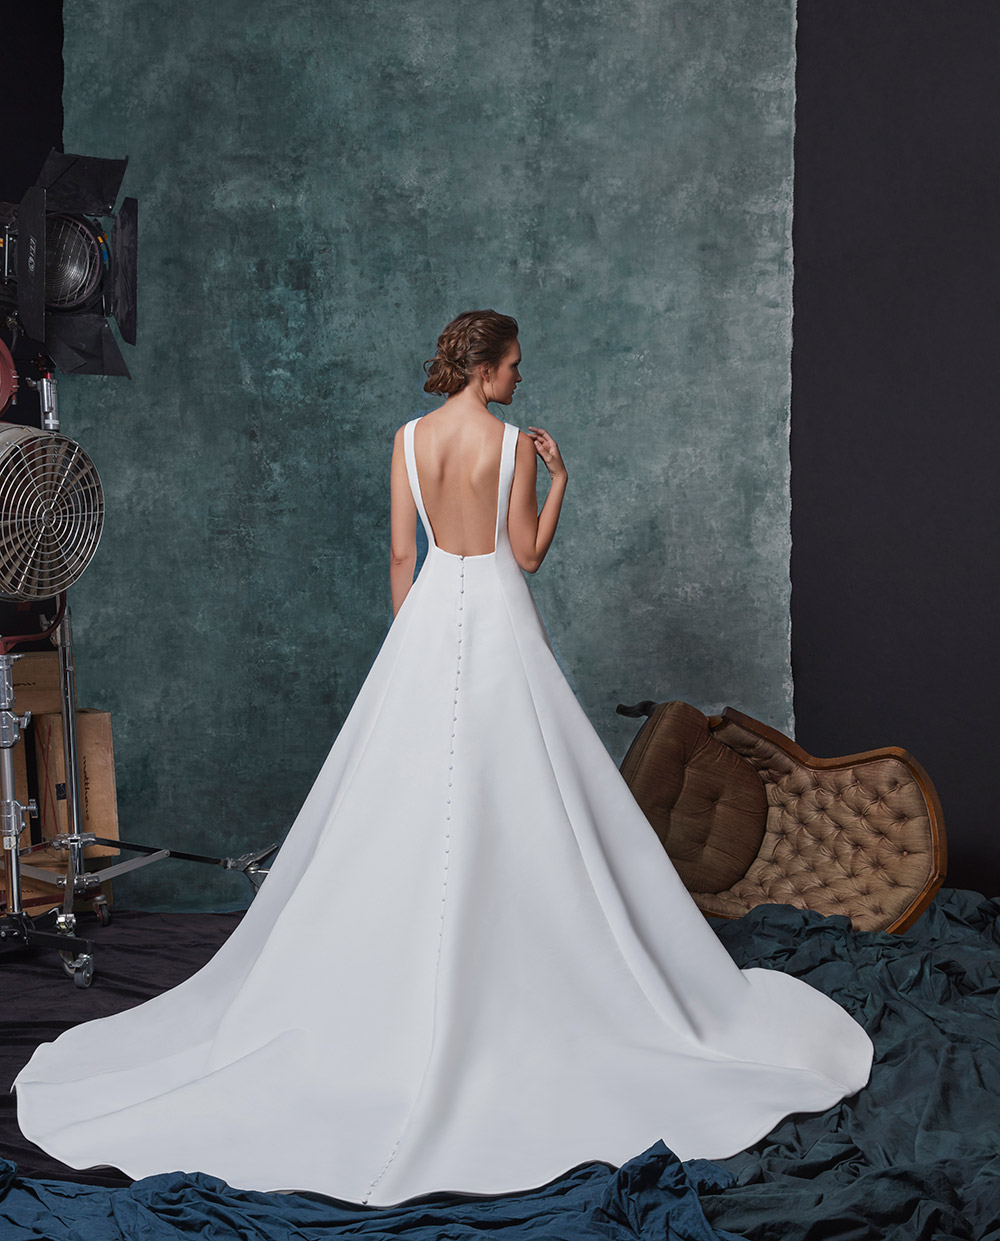 Dakota - Sareh Nouri Fall 2019 Bridal Collection. www.theweddingnotebook.com